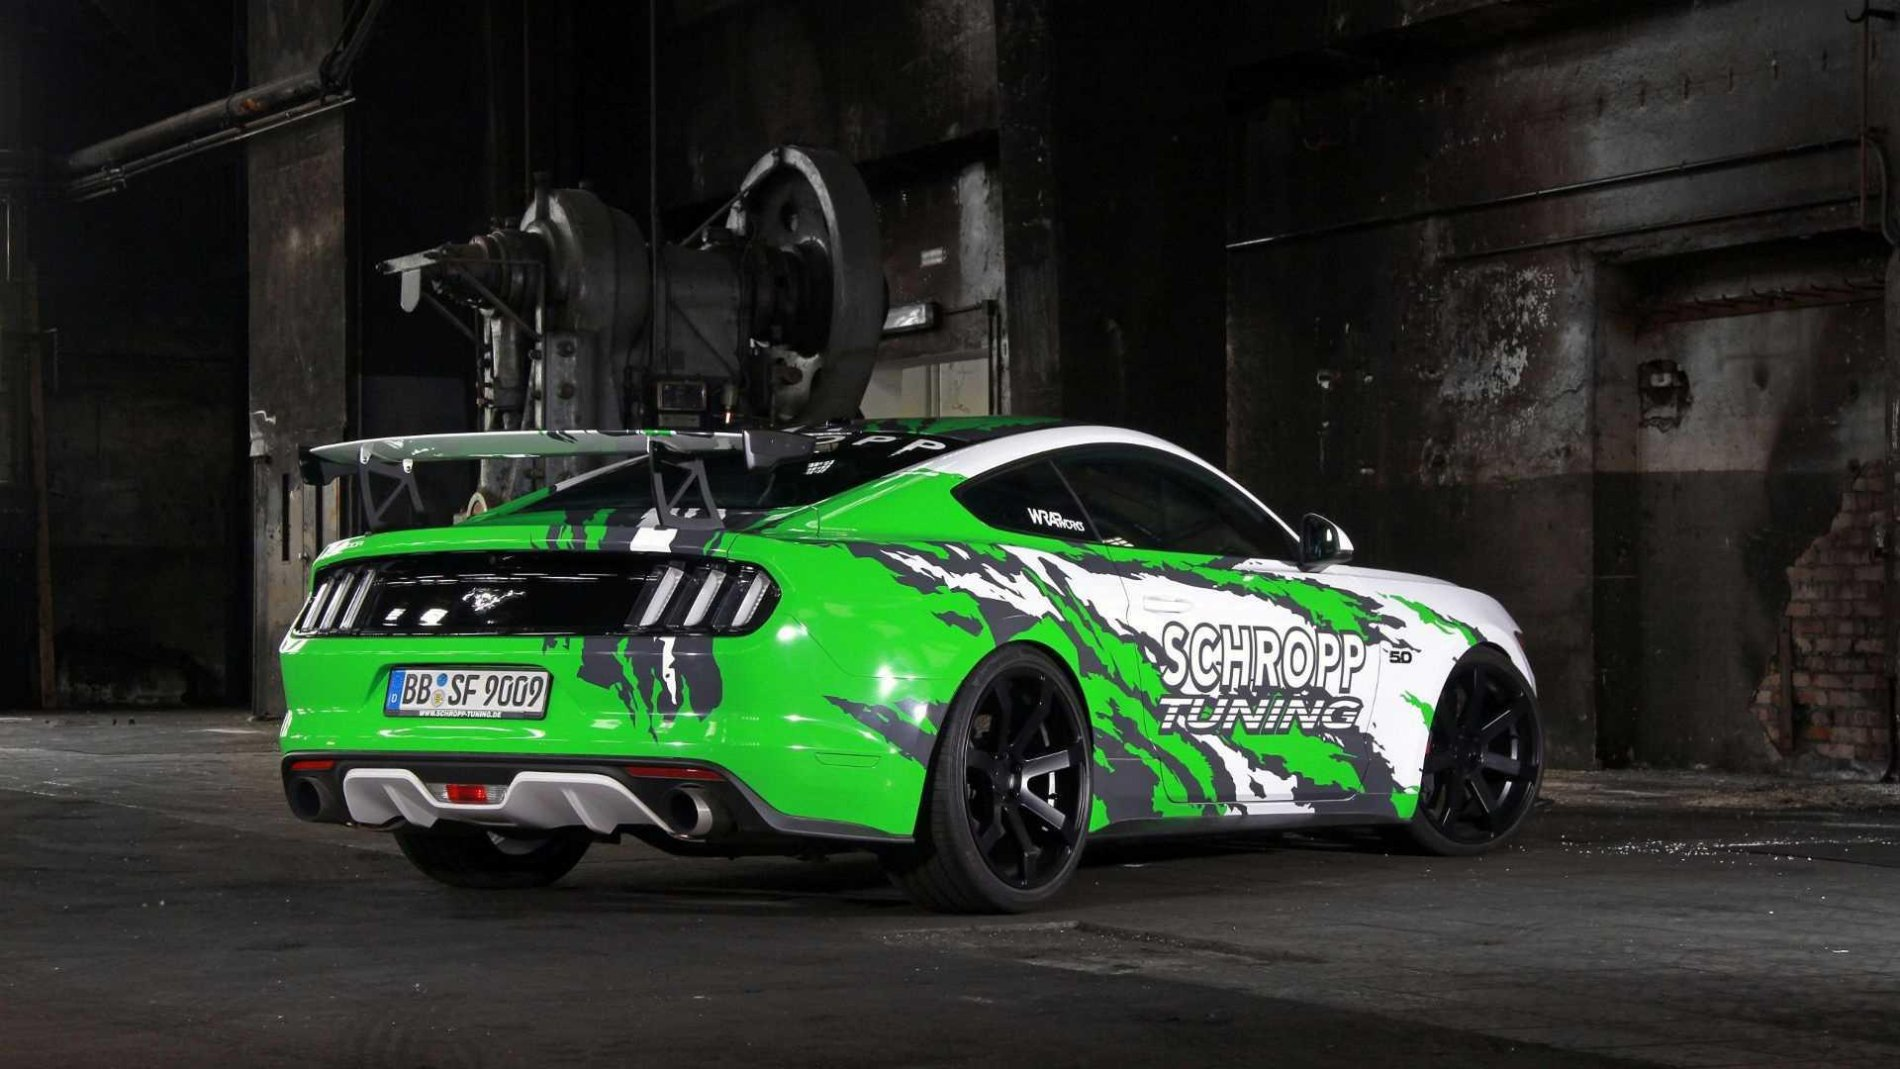 Ford Mustang by Schropp Tuning - Ford Mustang by Schropp Tuning